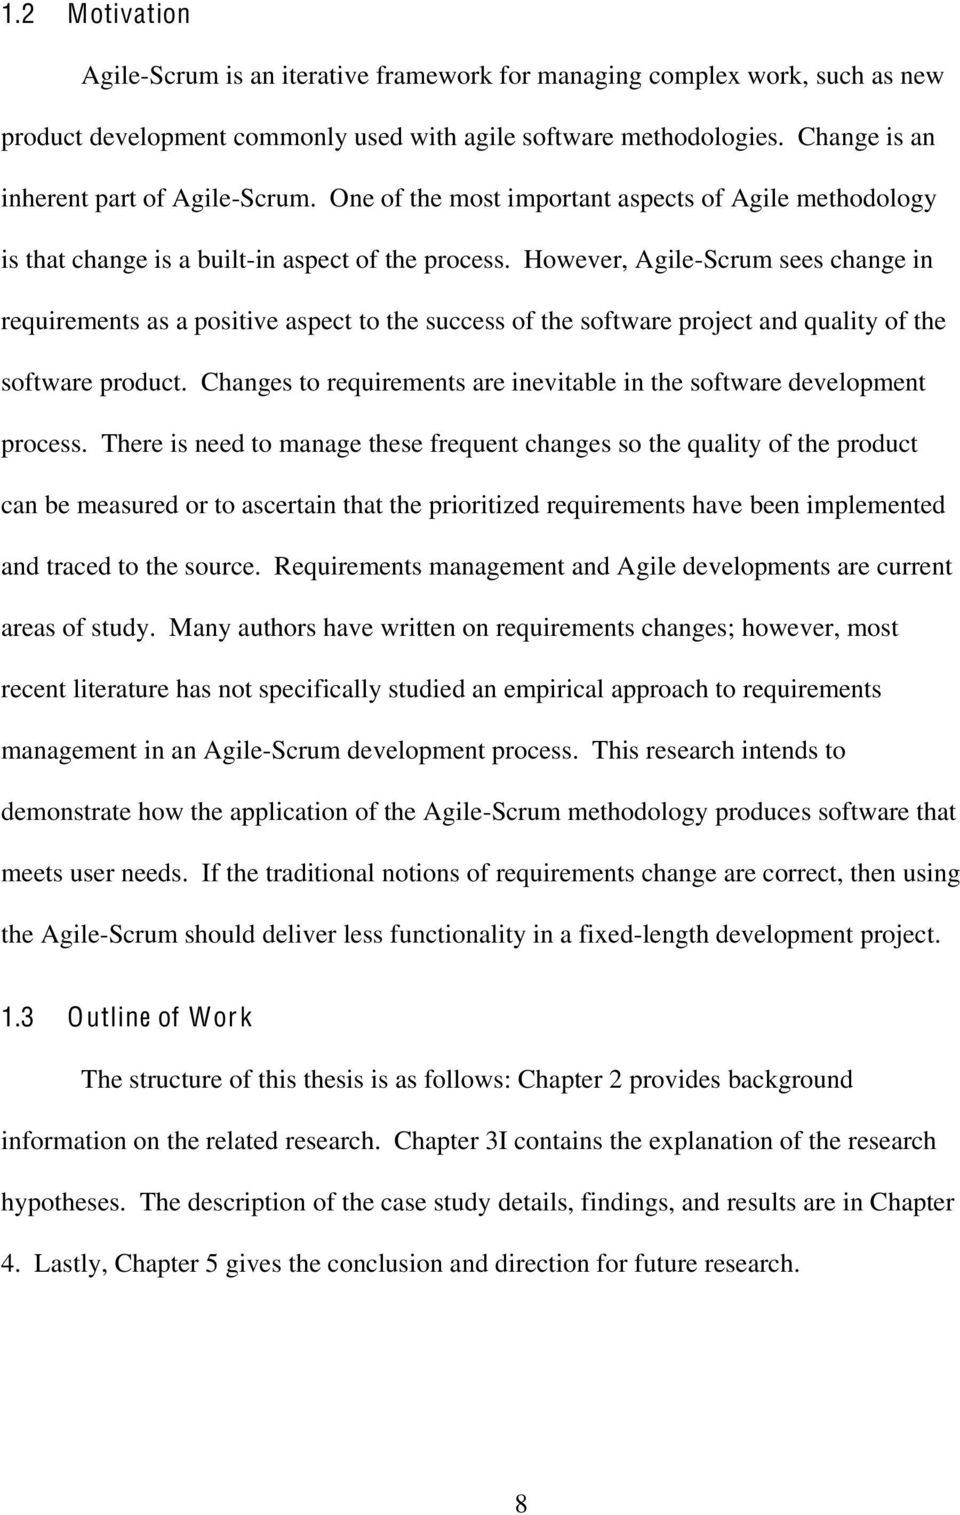 However, Agile-Scrum sees change in requirements as a positive aspect to the success of the software project and quality of the software product.